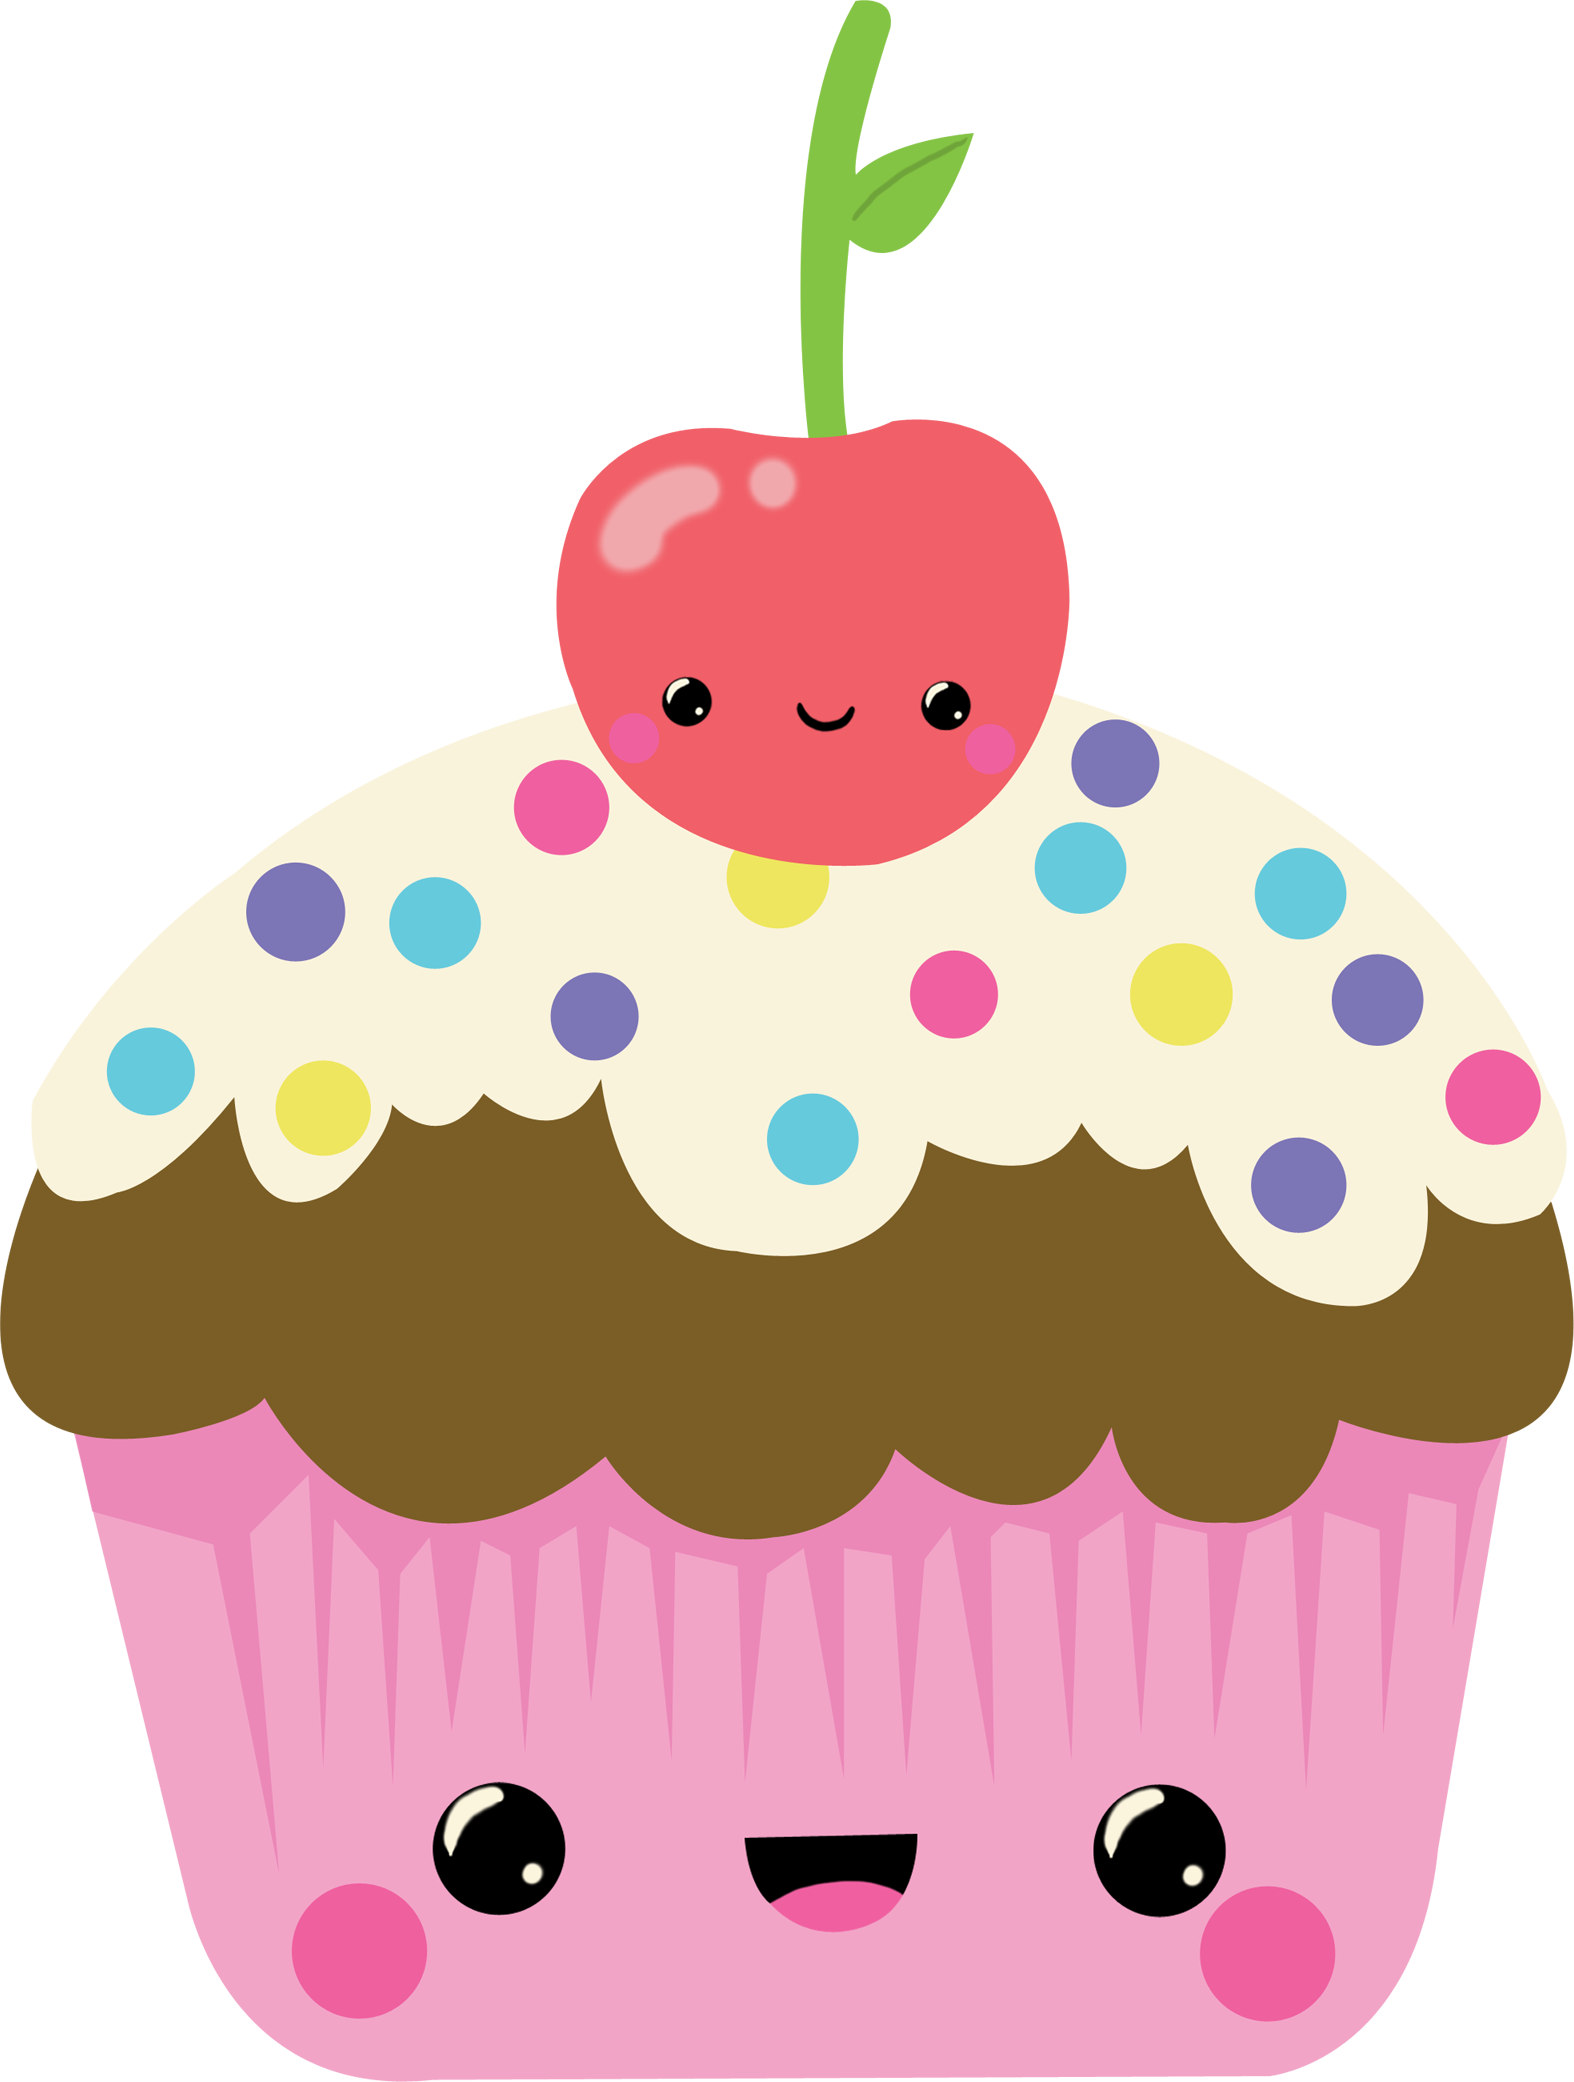 cute muffin png transparent cute muffin png images pluspng cute cupcake clip art free white frosting cute cupcake clipart with faces